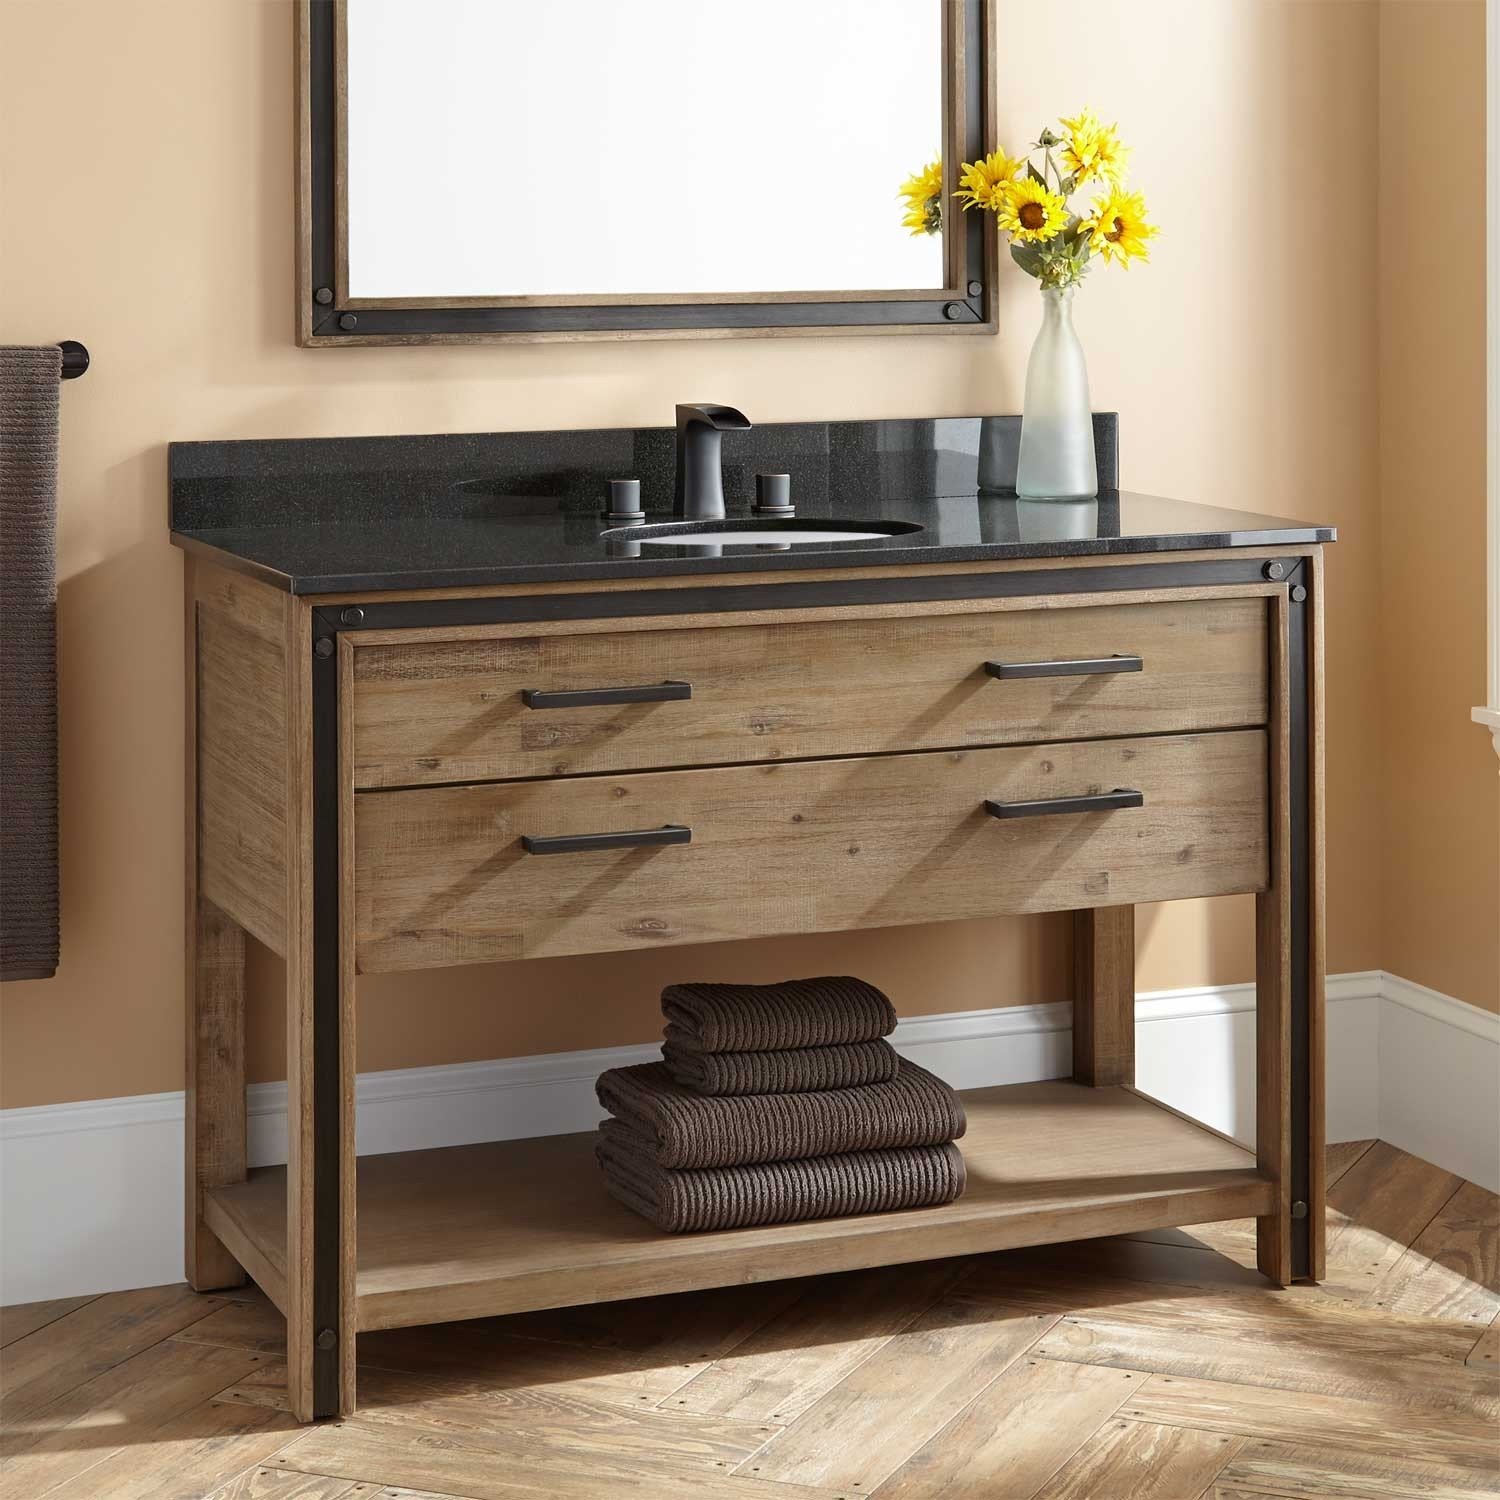 Pics Of Bathroom Vanities